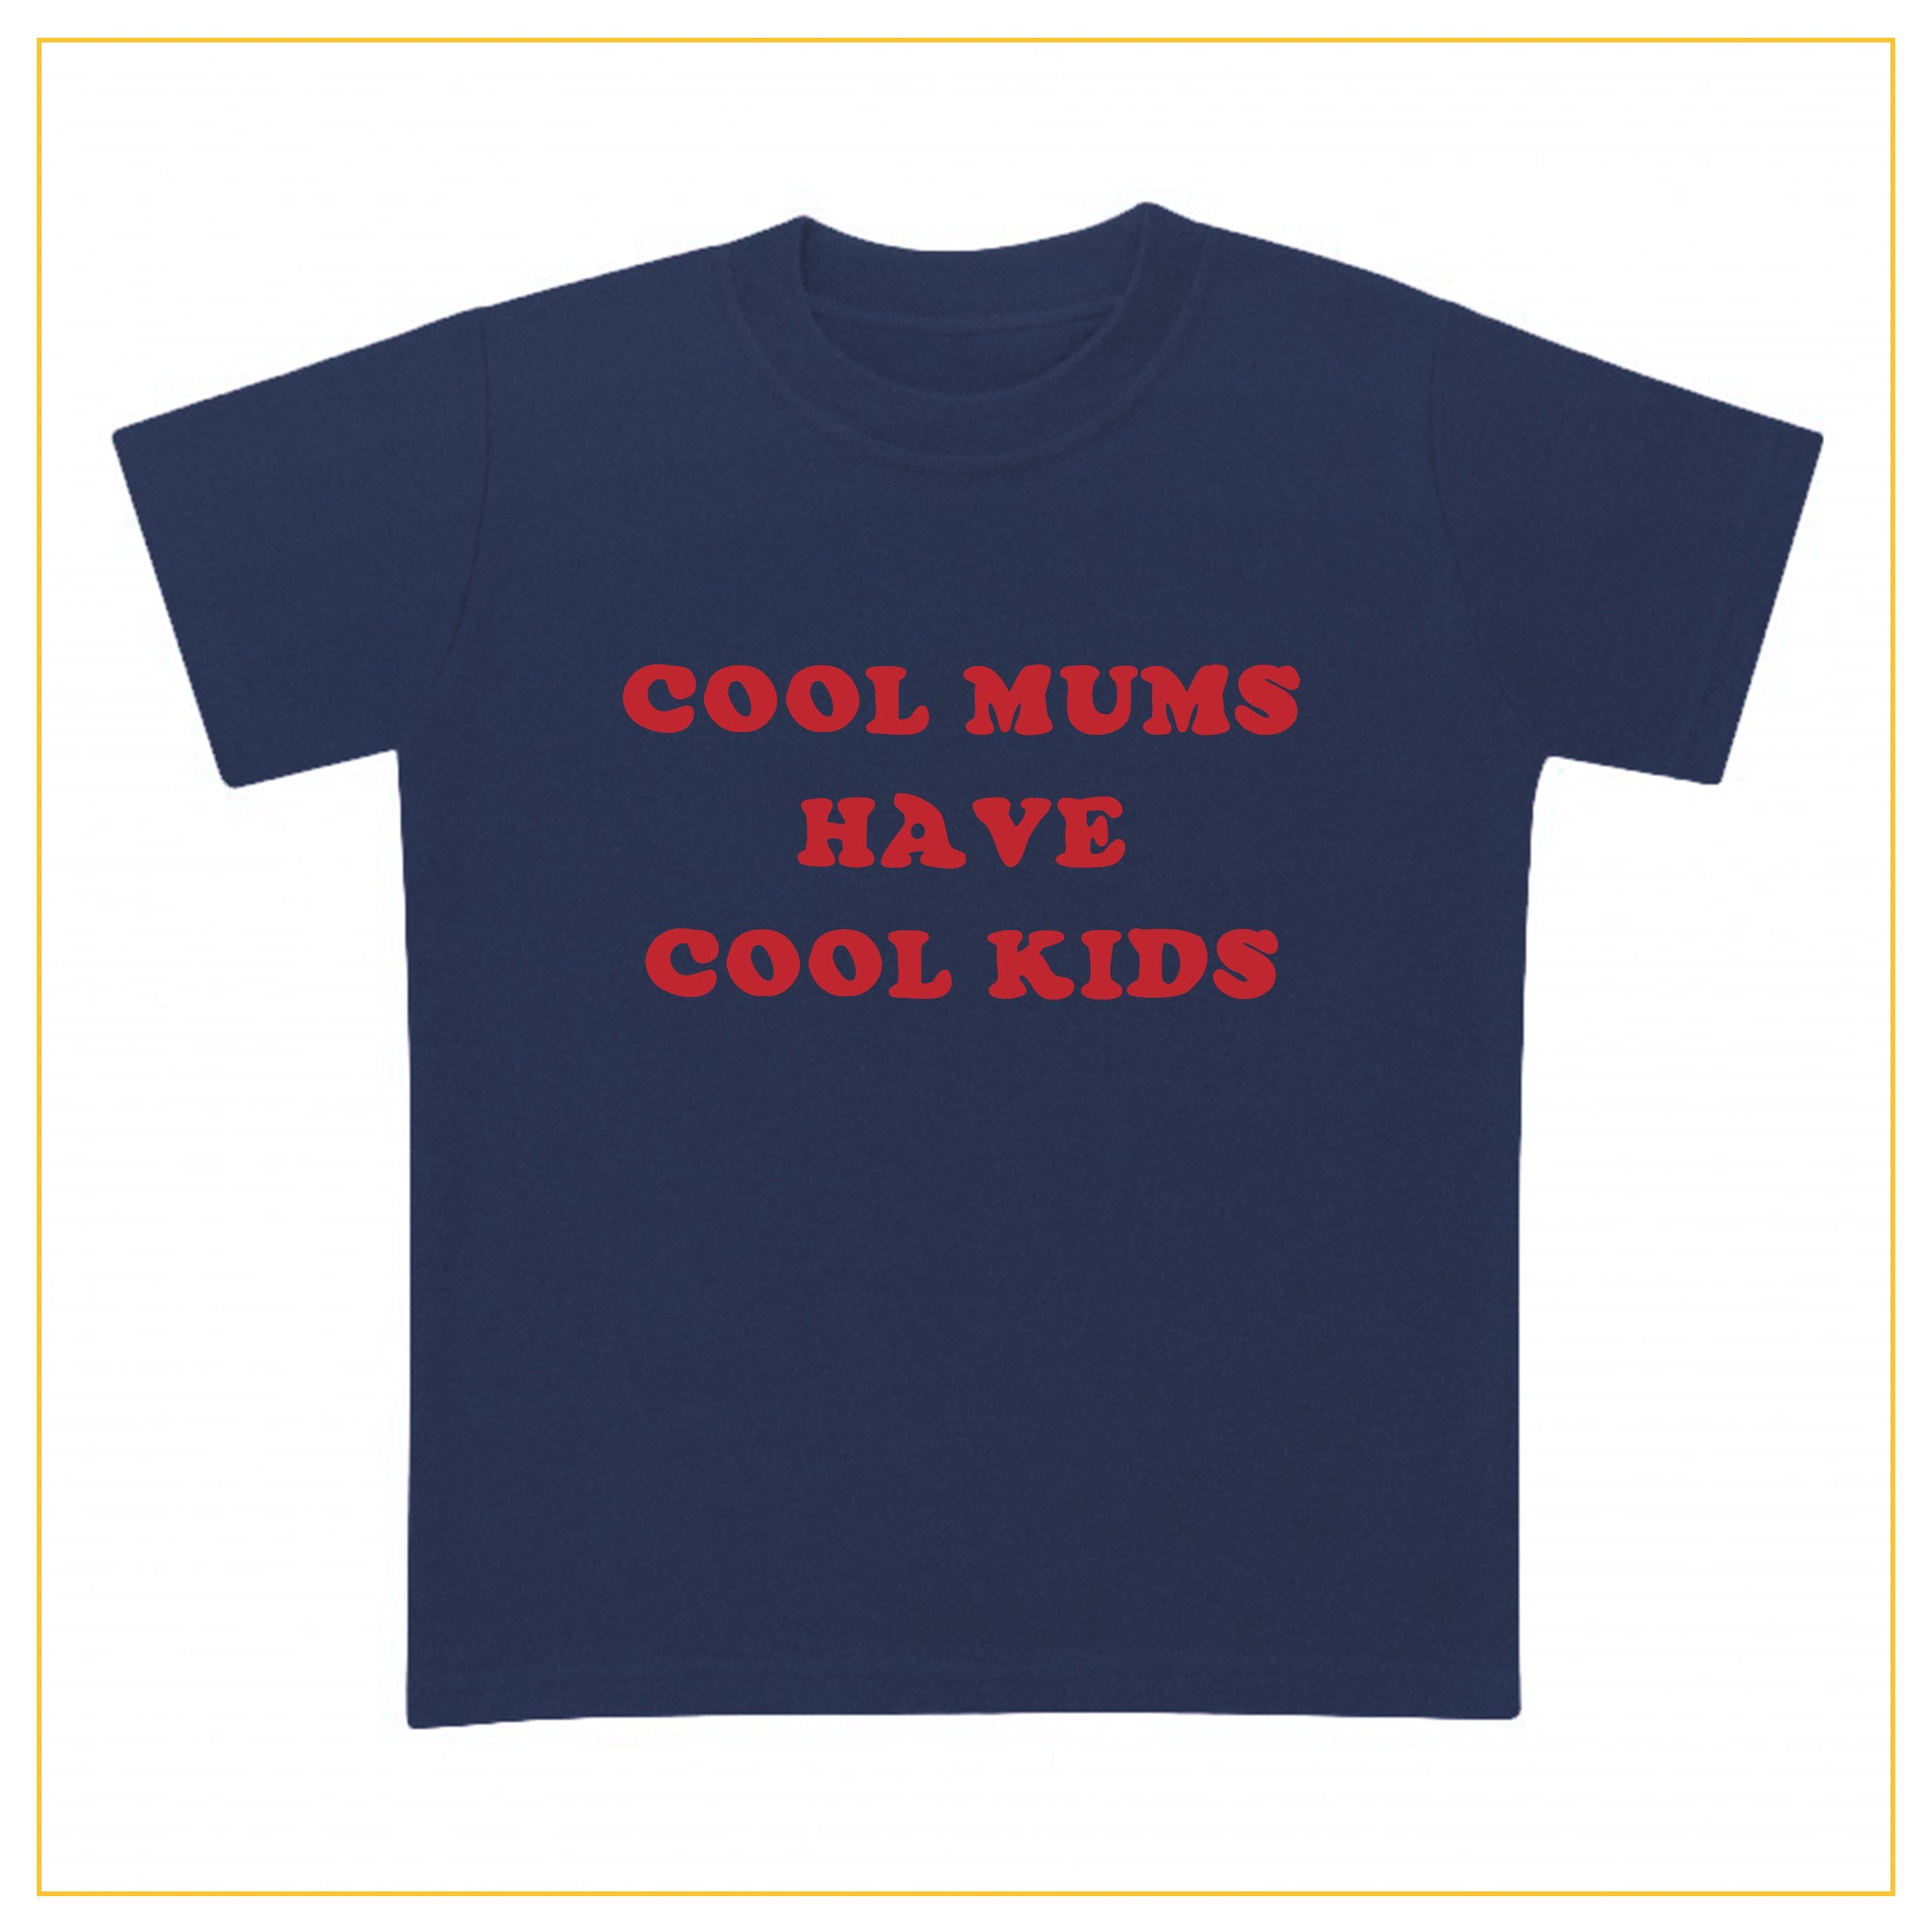 cool mums have cool kids navy blue t-shirt